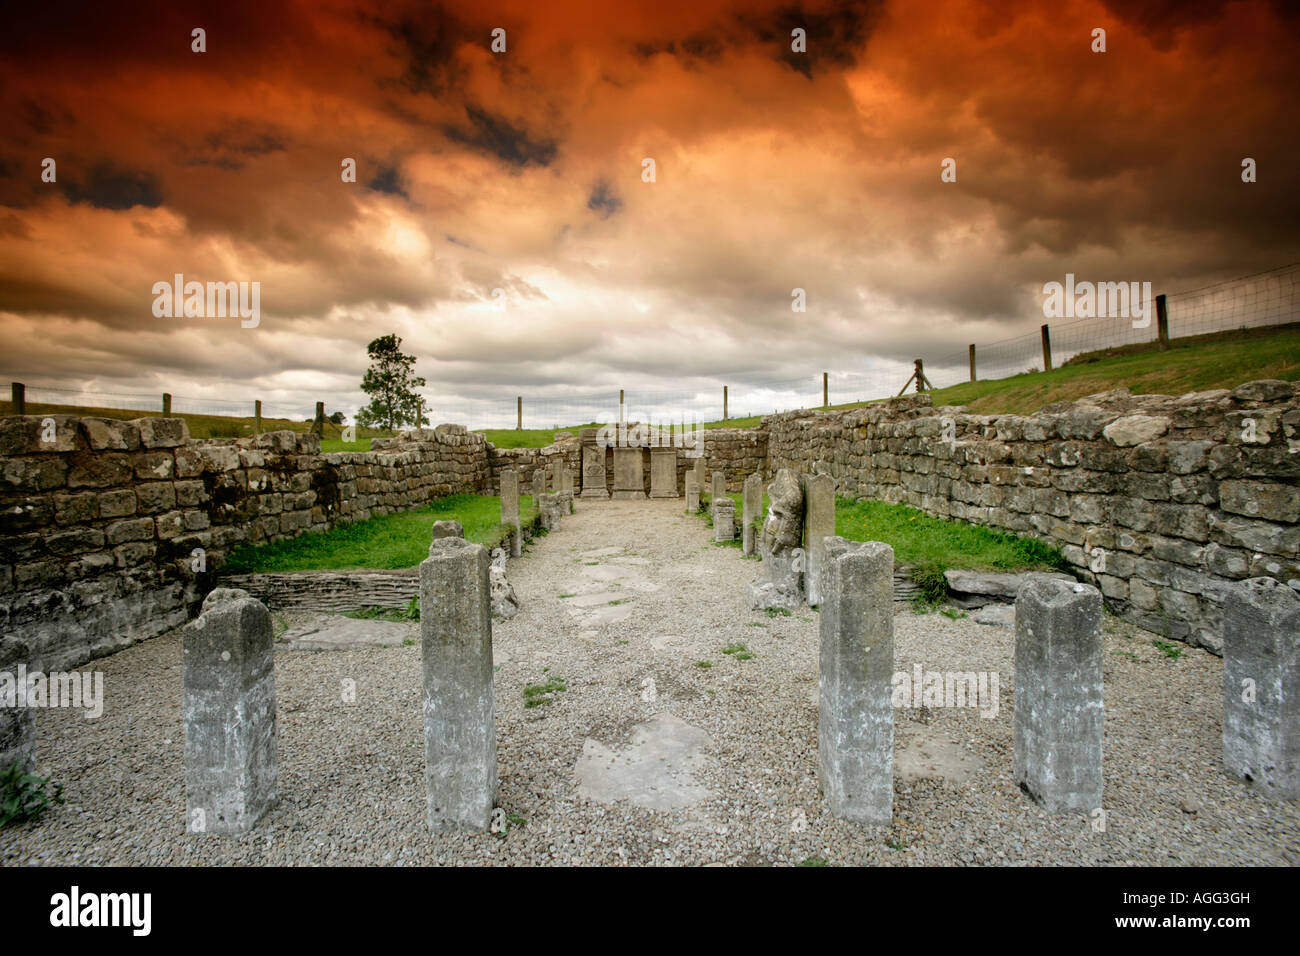 Roman Temple of Mithras at Carrawburgh or Brocolitia, Hadrian's Wall, Northumberland, UK - Stock Image